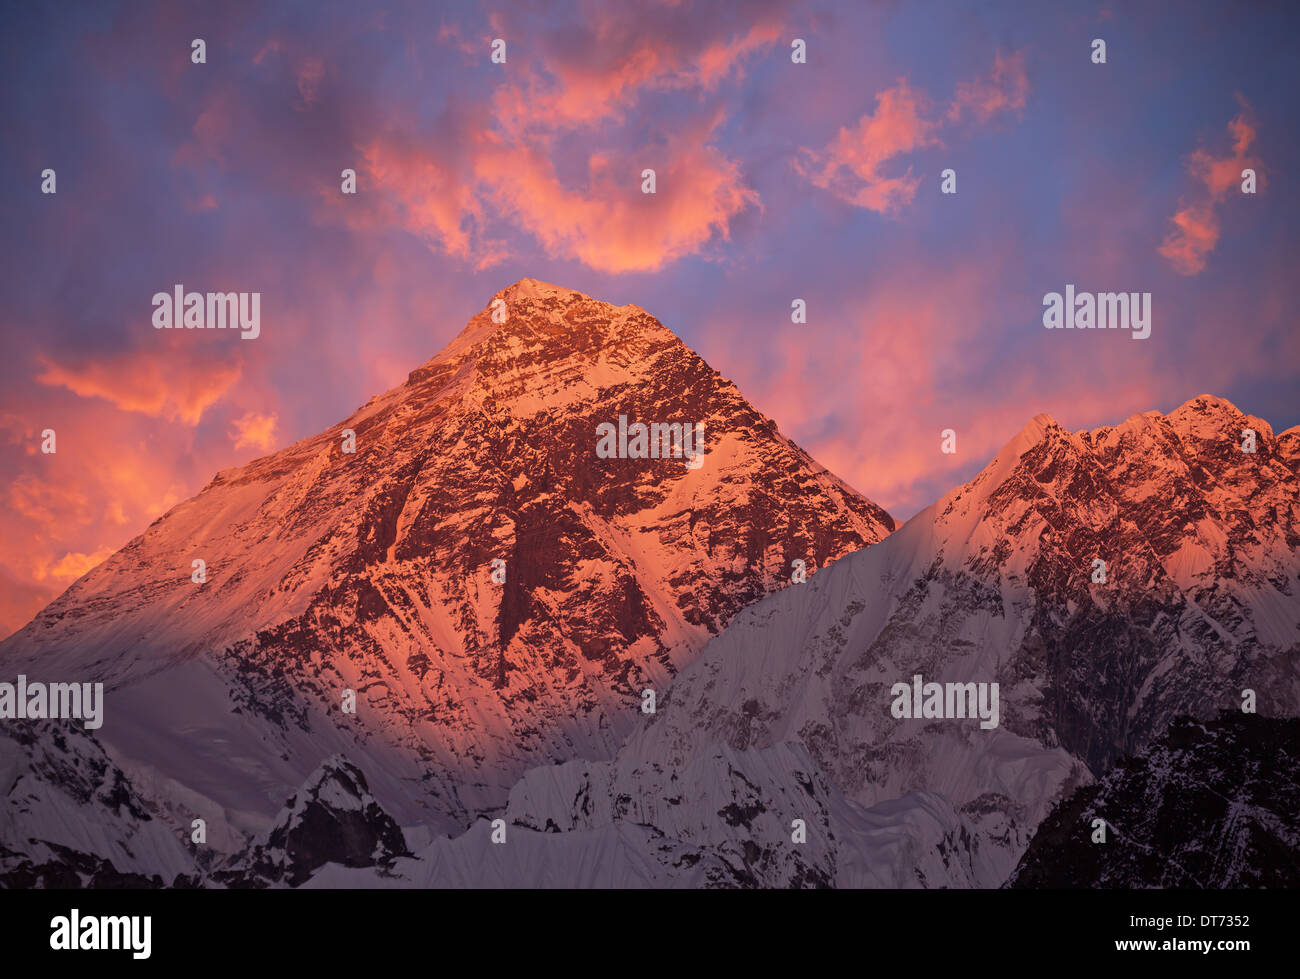 Mount Everest (8848 m) at sunset. Canon 5D Mk II. - Stock Image